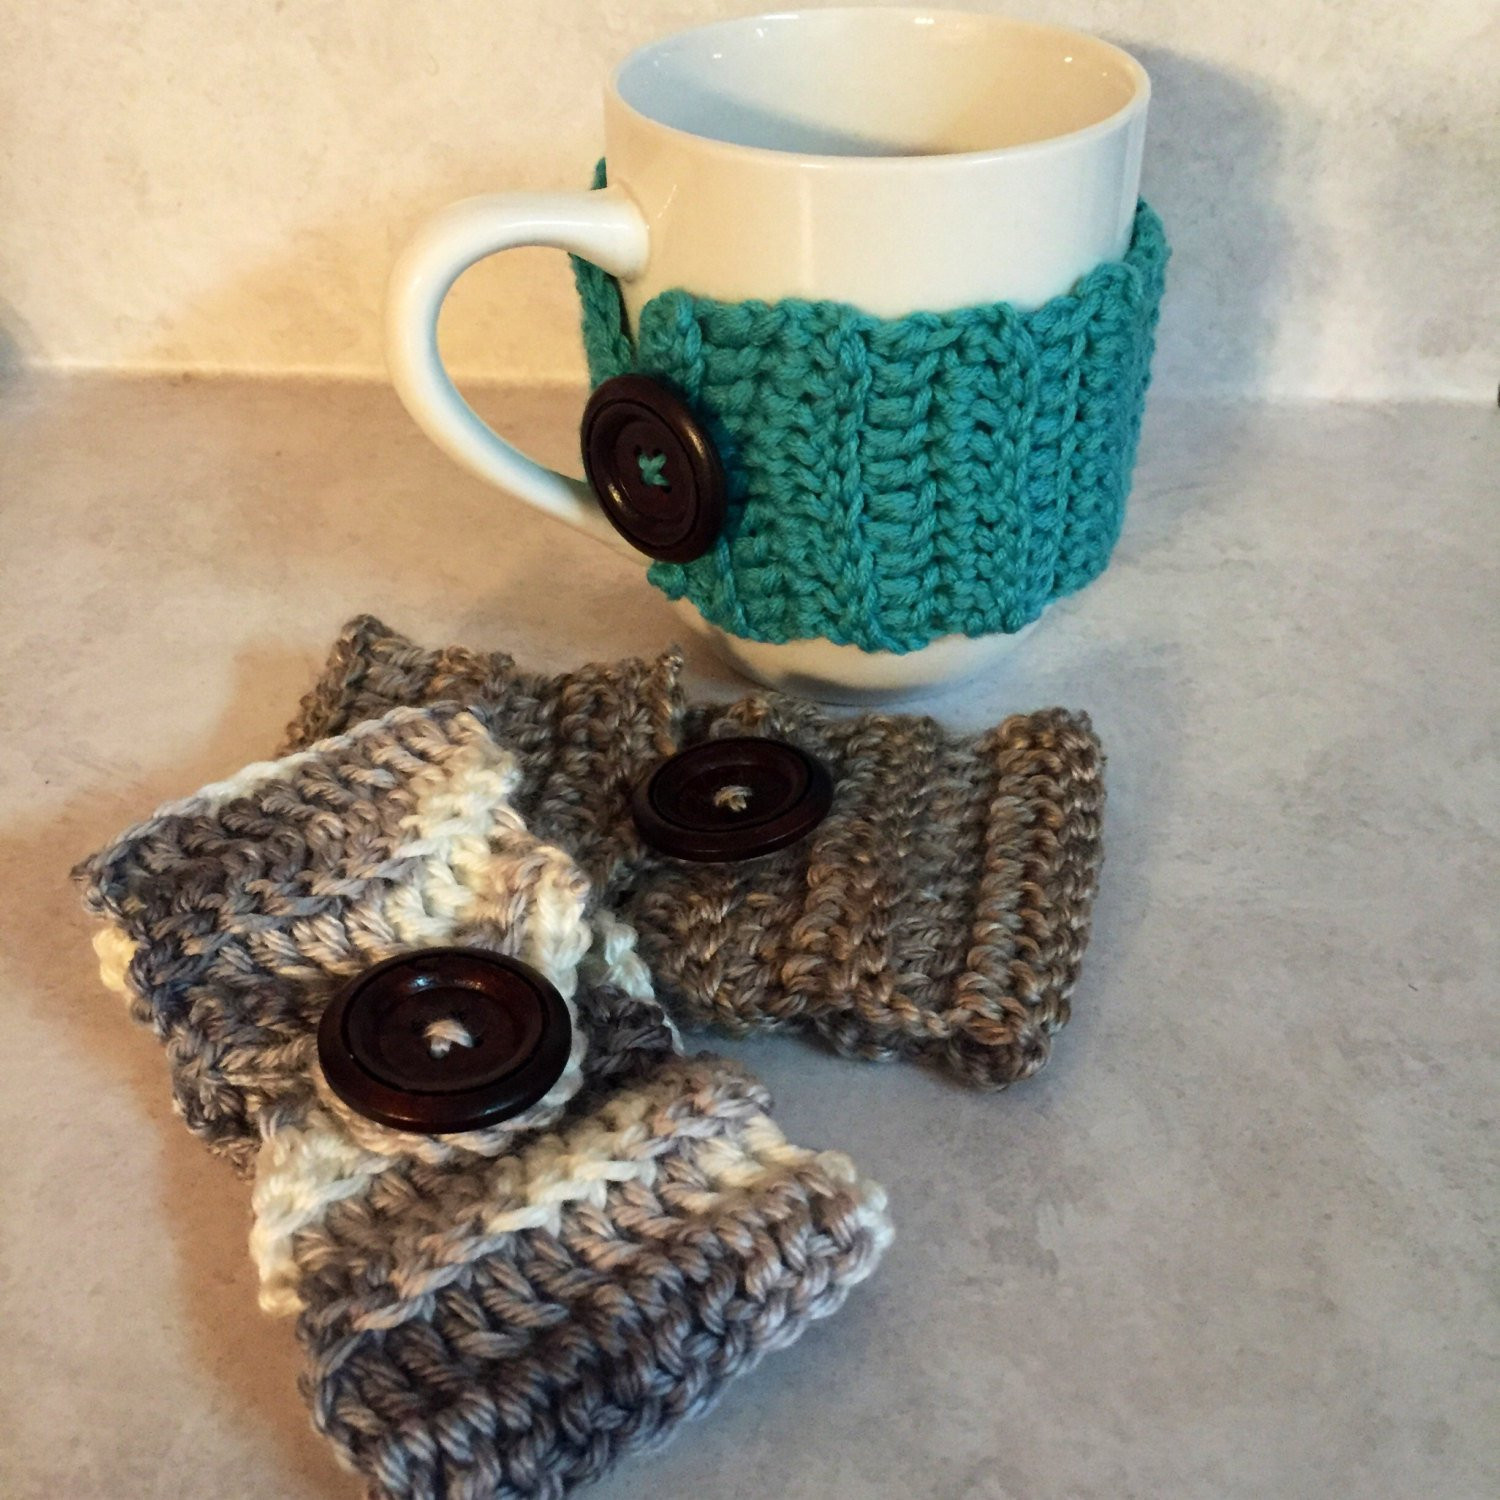 Crochet Coffee Cup Cozy New Crochet Tea Cozy Coffee Cup Sleeve Coffee Sleeve Mug Cozy Of Crochet Coffee Cup Cozy Luxury Pdf Crochet Pattern Coffee Mug Cozy with button by